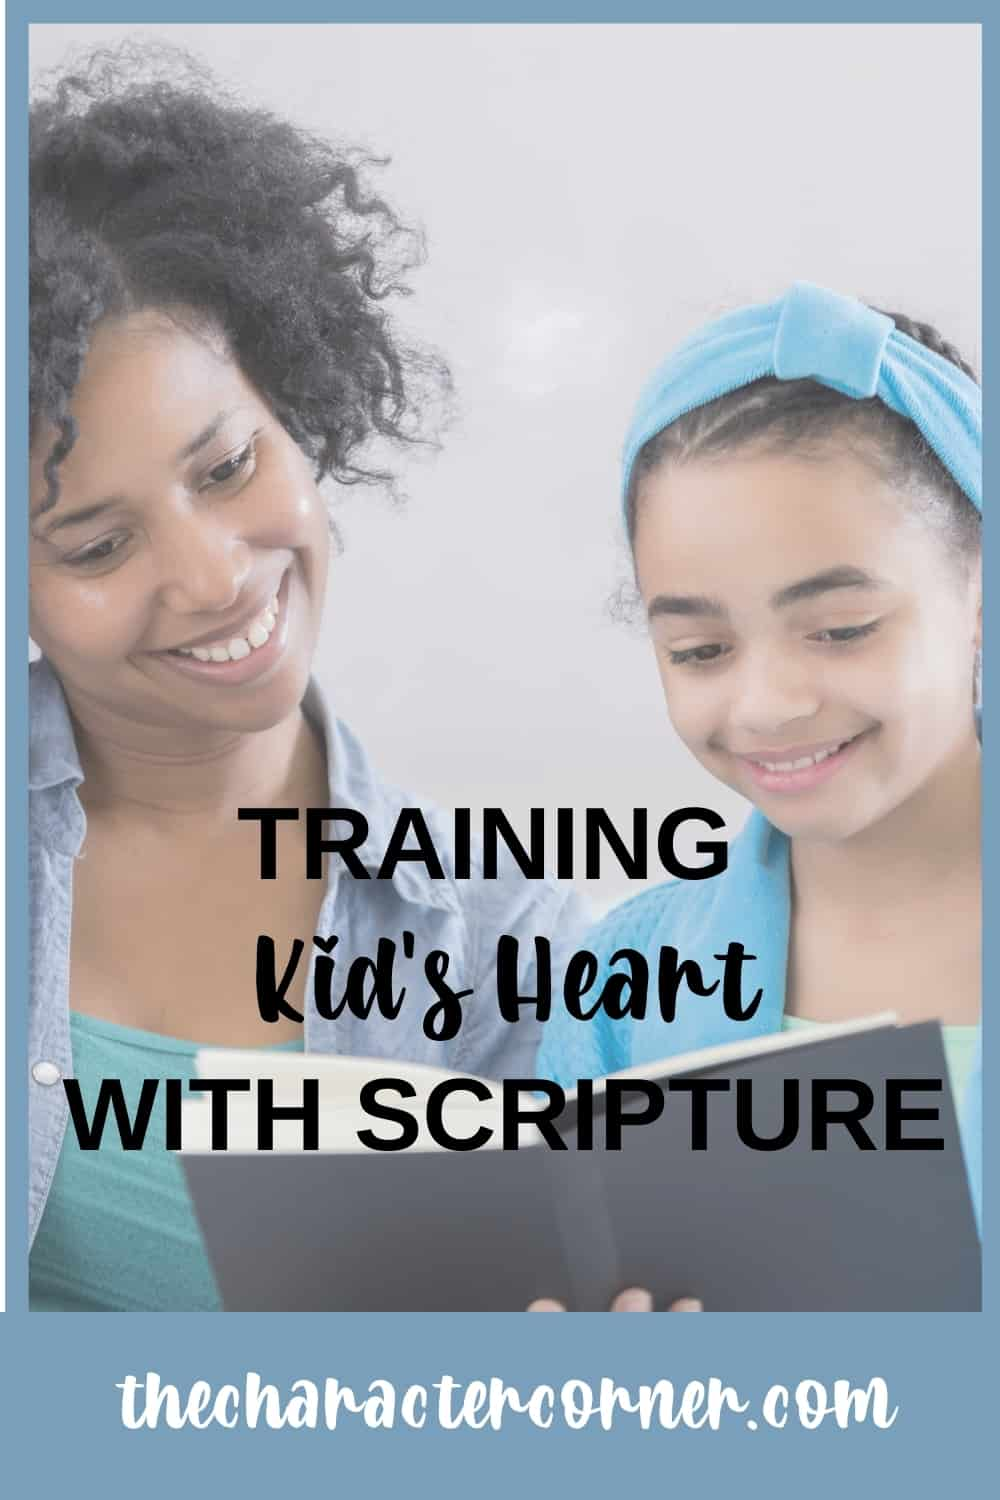 mom and daughter reading bible text on image reads Training Kids' Hearts With Scripture